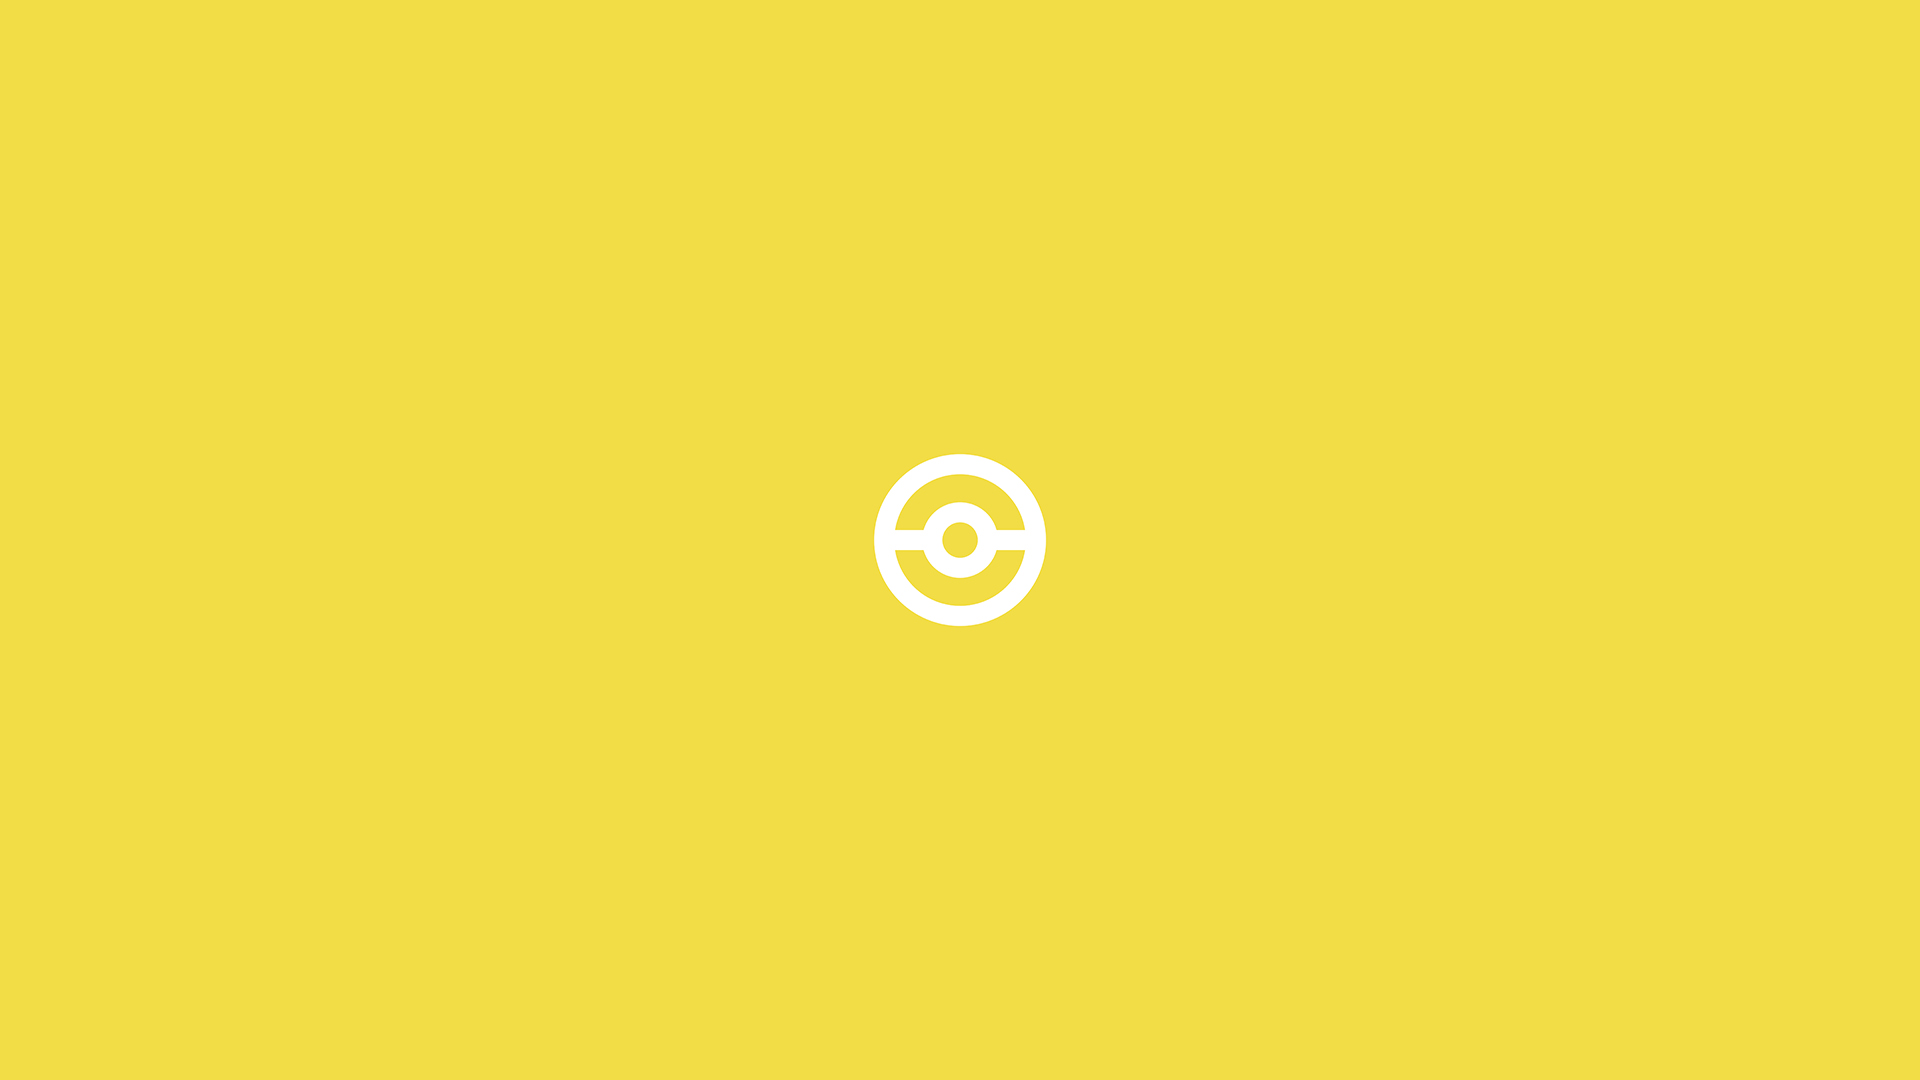 Pikachu minimal wallpaper pack by paralitik on deviantart for Deviantart minimal wallpaper